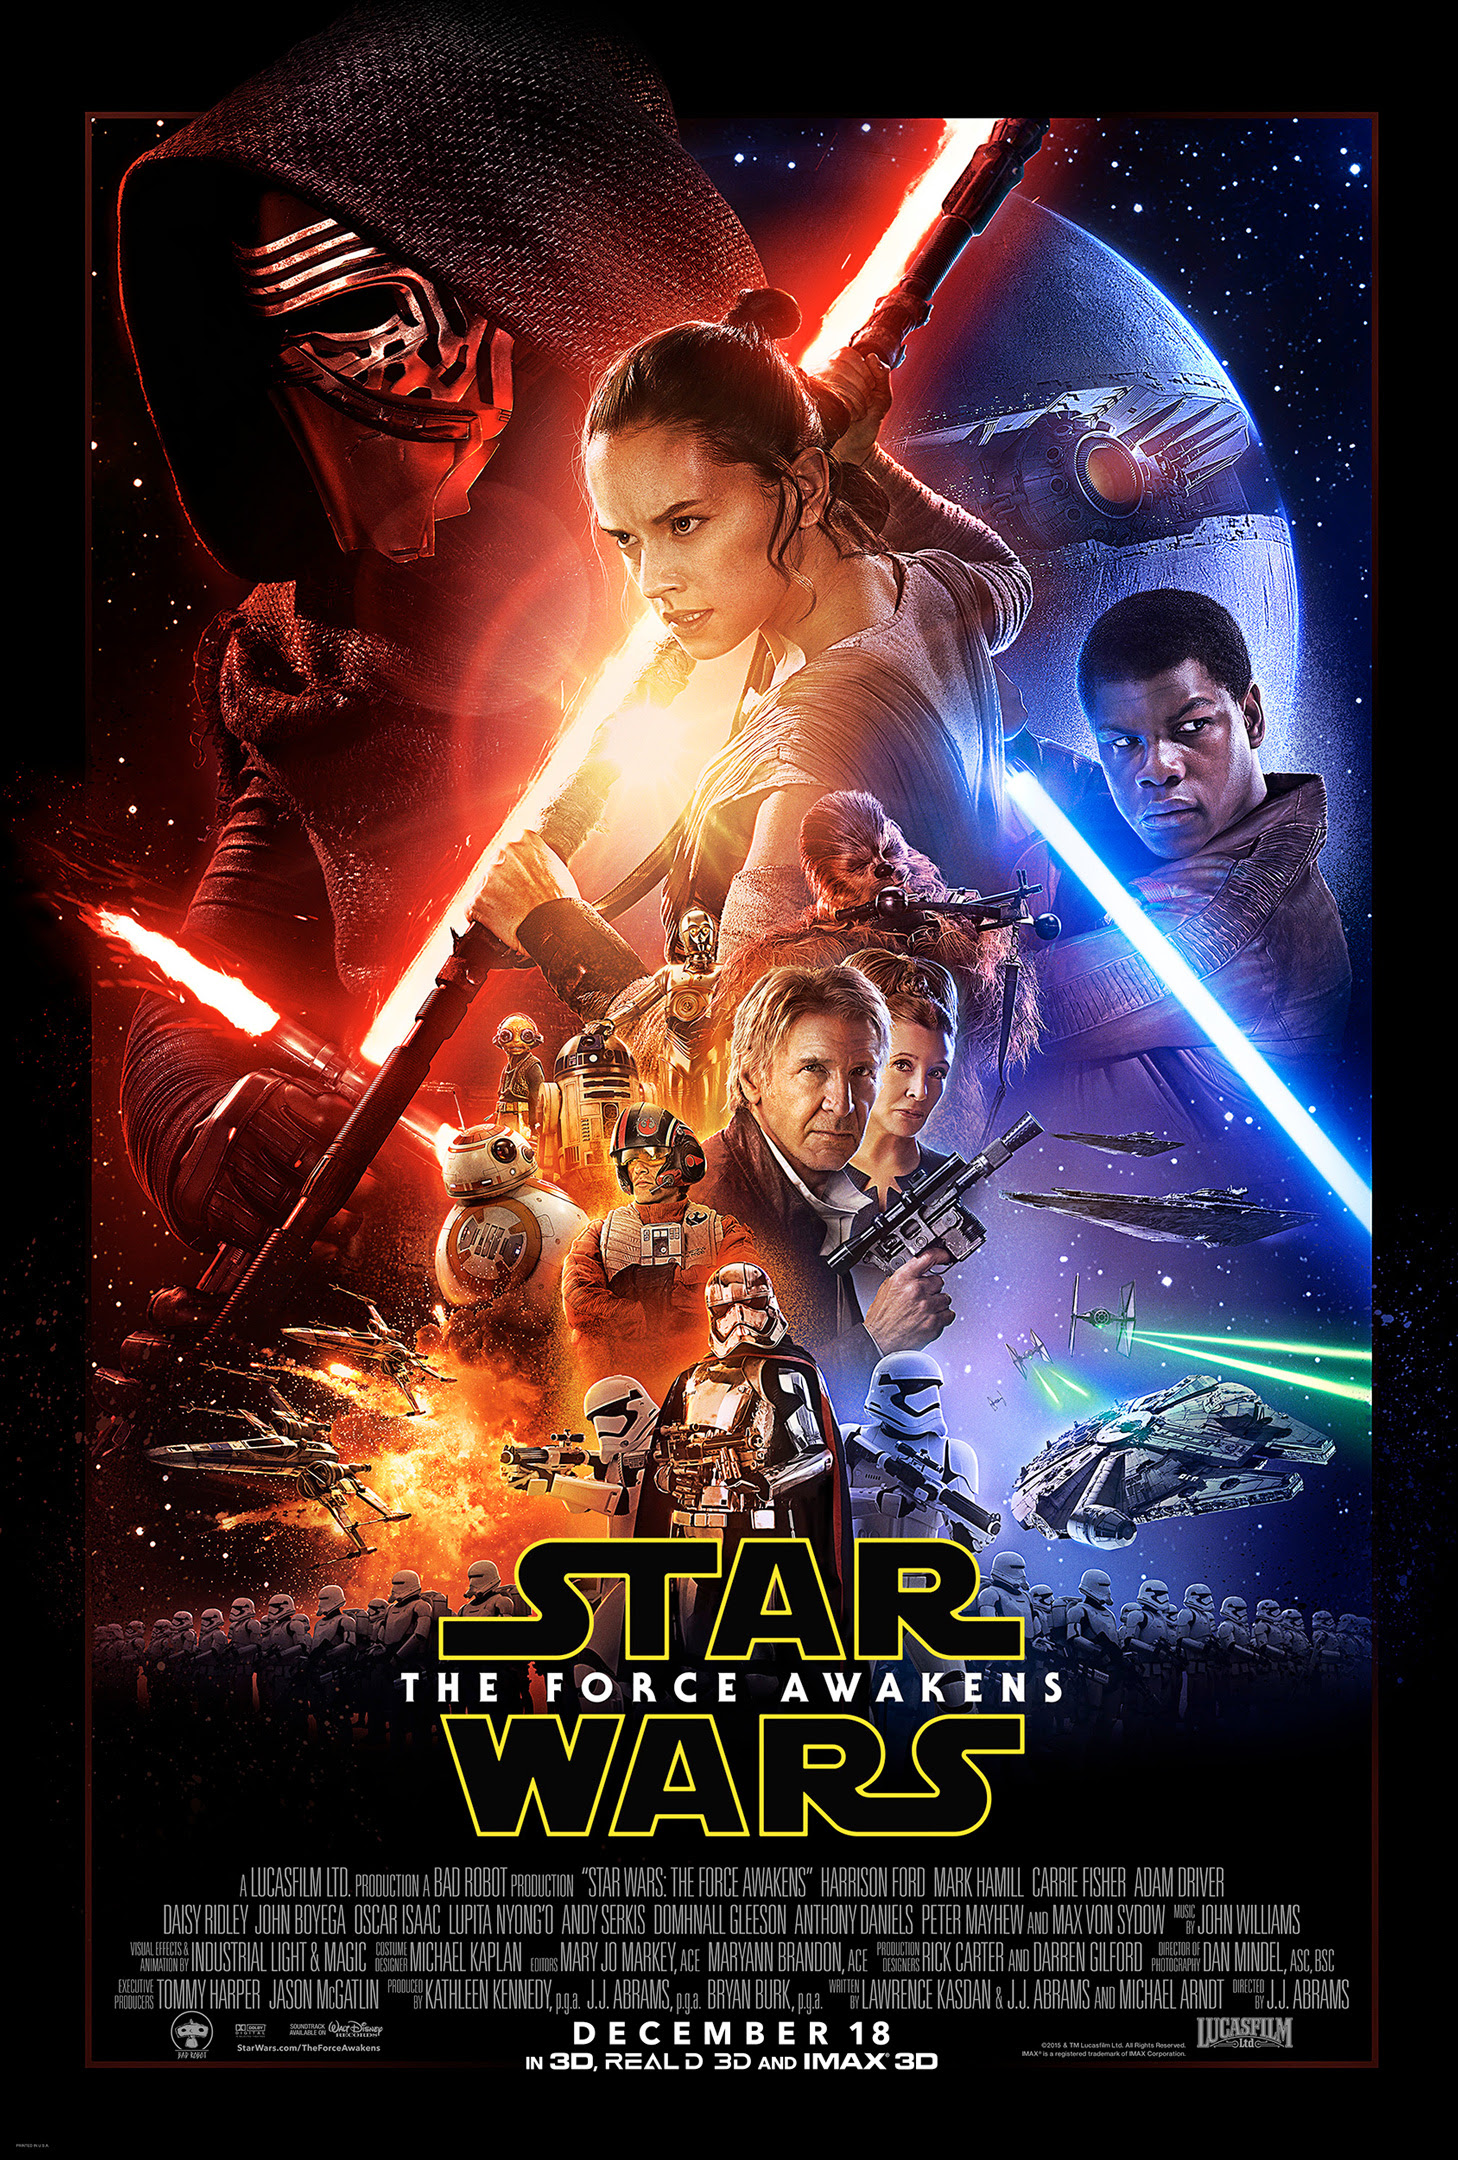 http://oyster.ignimgs.com/wordpress/stg.ign.com/2015/10/star-wars-force-awakens-official-poster.jpg